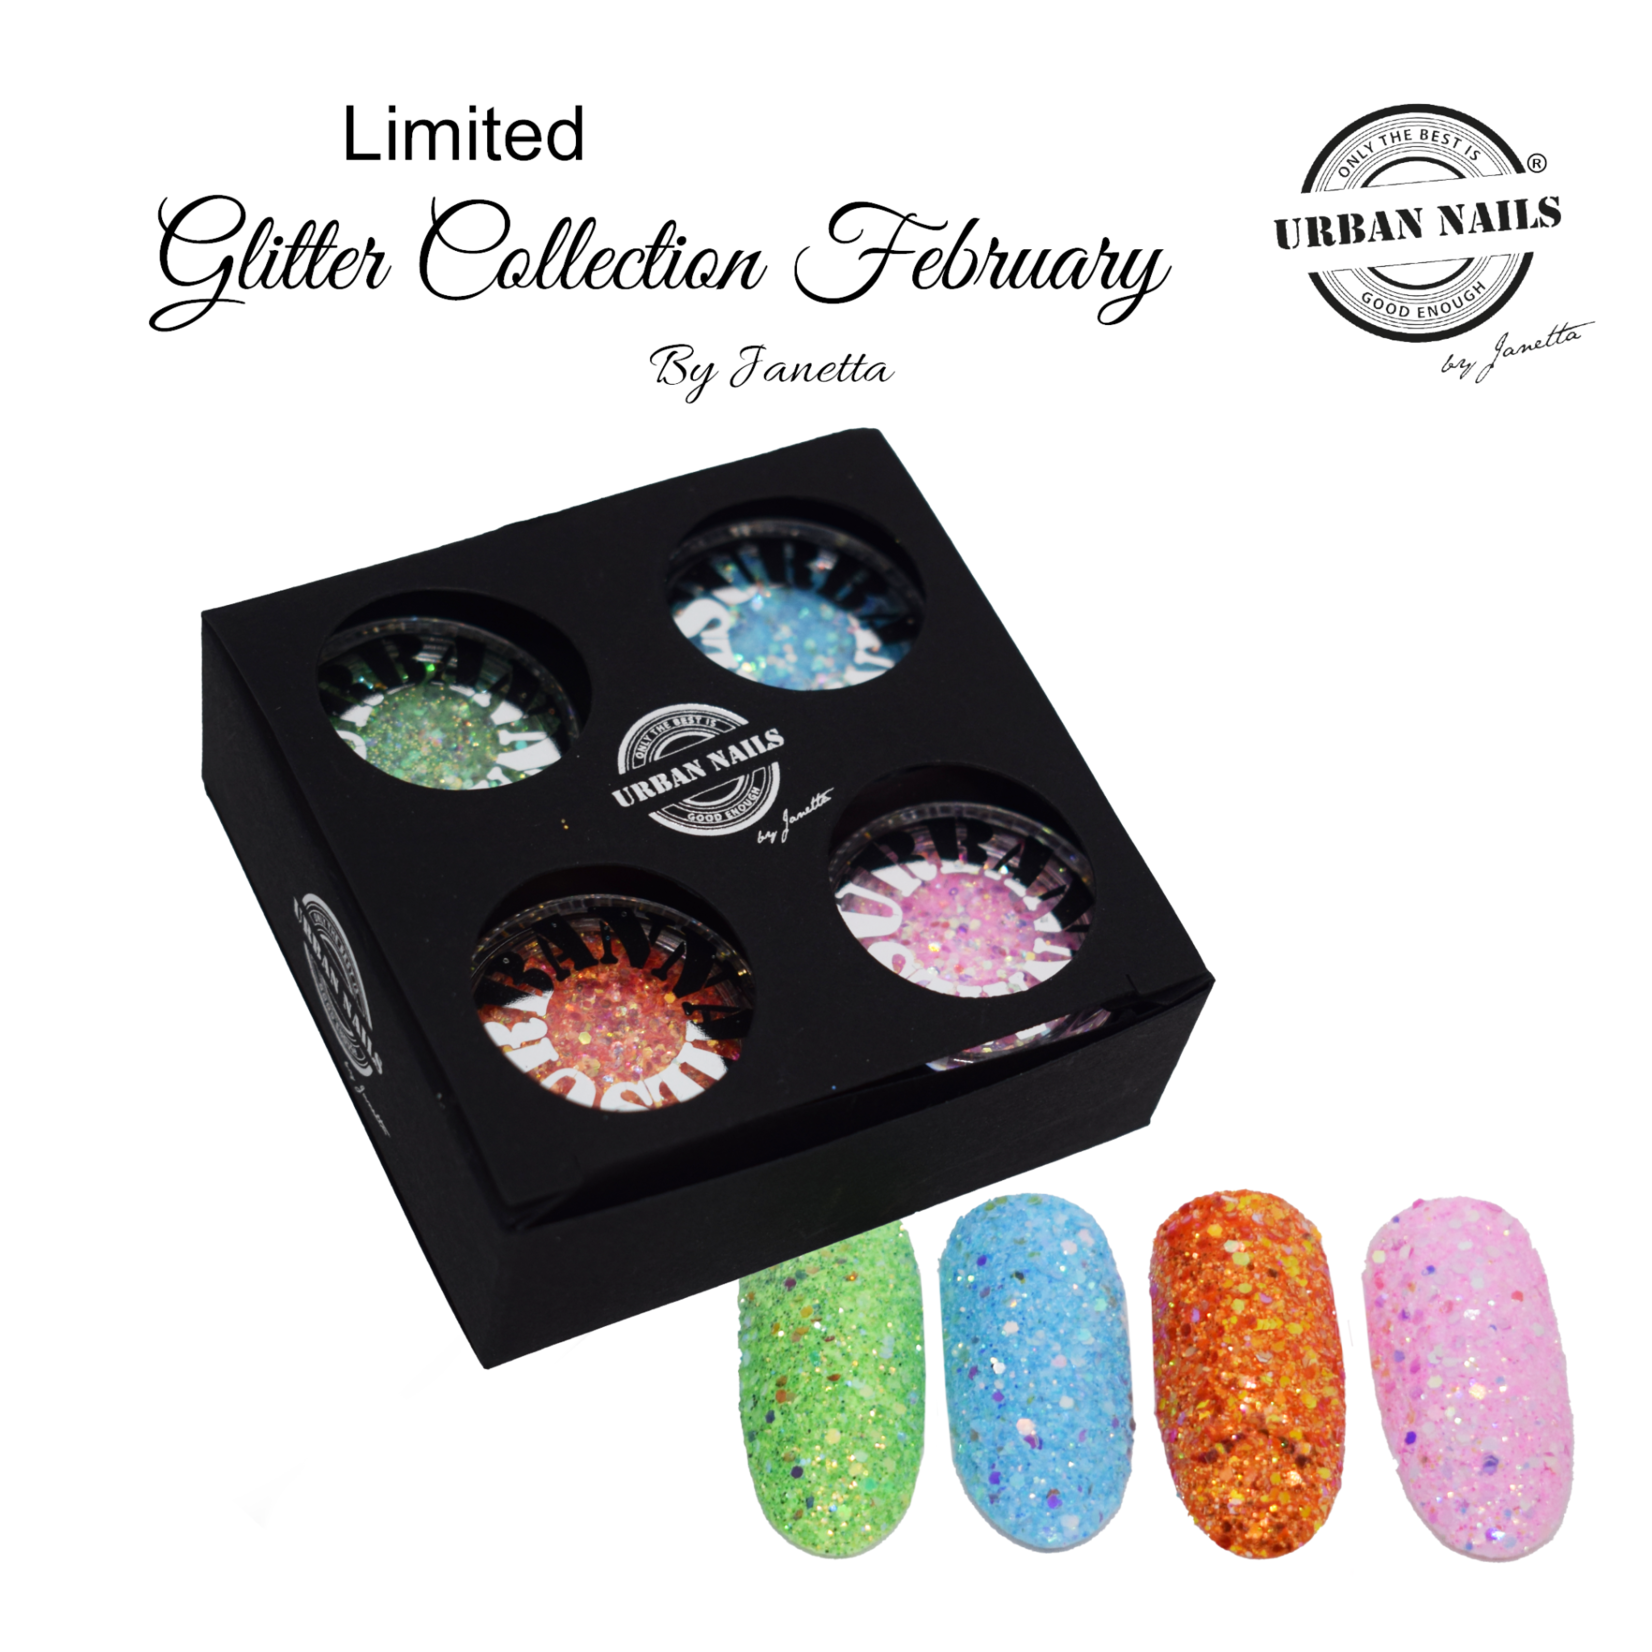 Urban Nails Limited Glitter Collection February